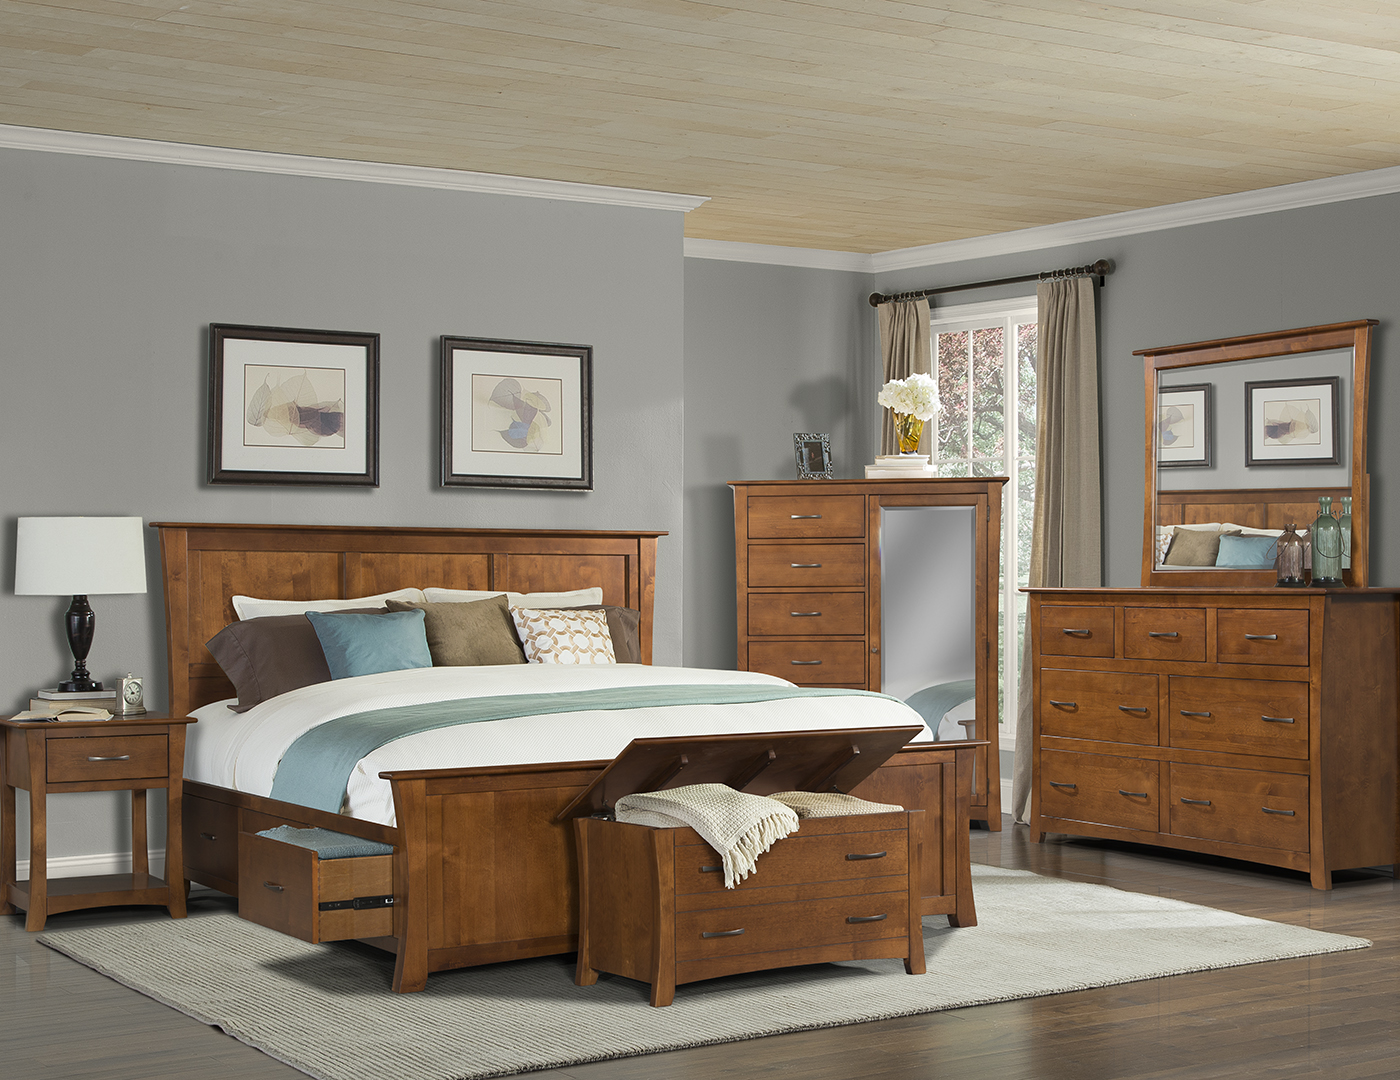 grant park king storage bed